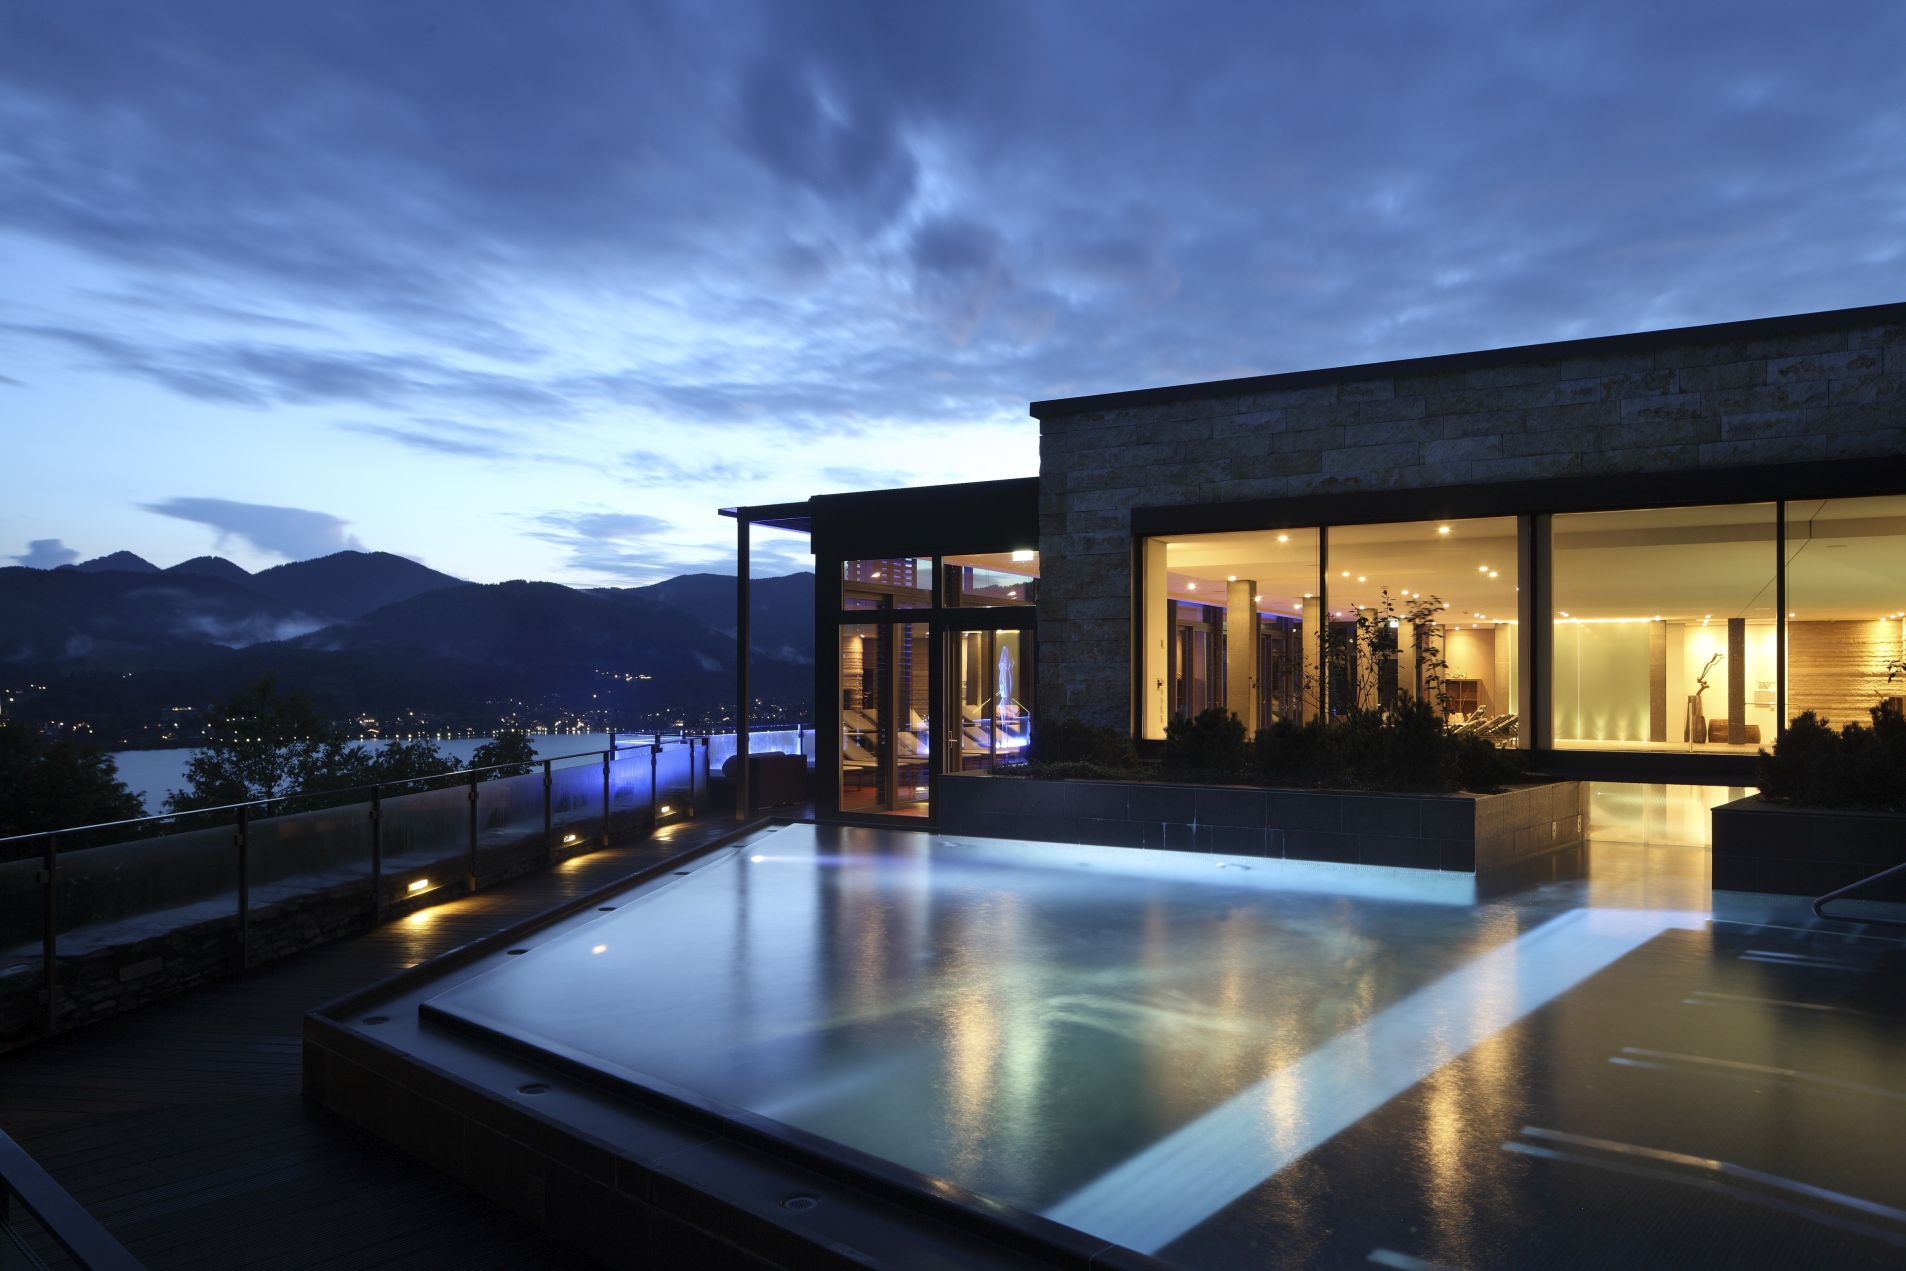 DAS TEGERNSEE Rooftop Pool by night